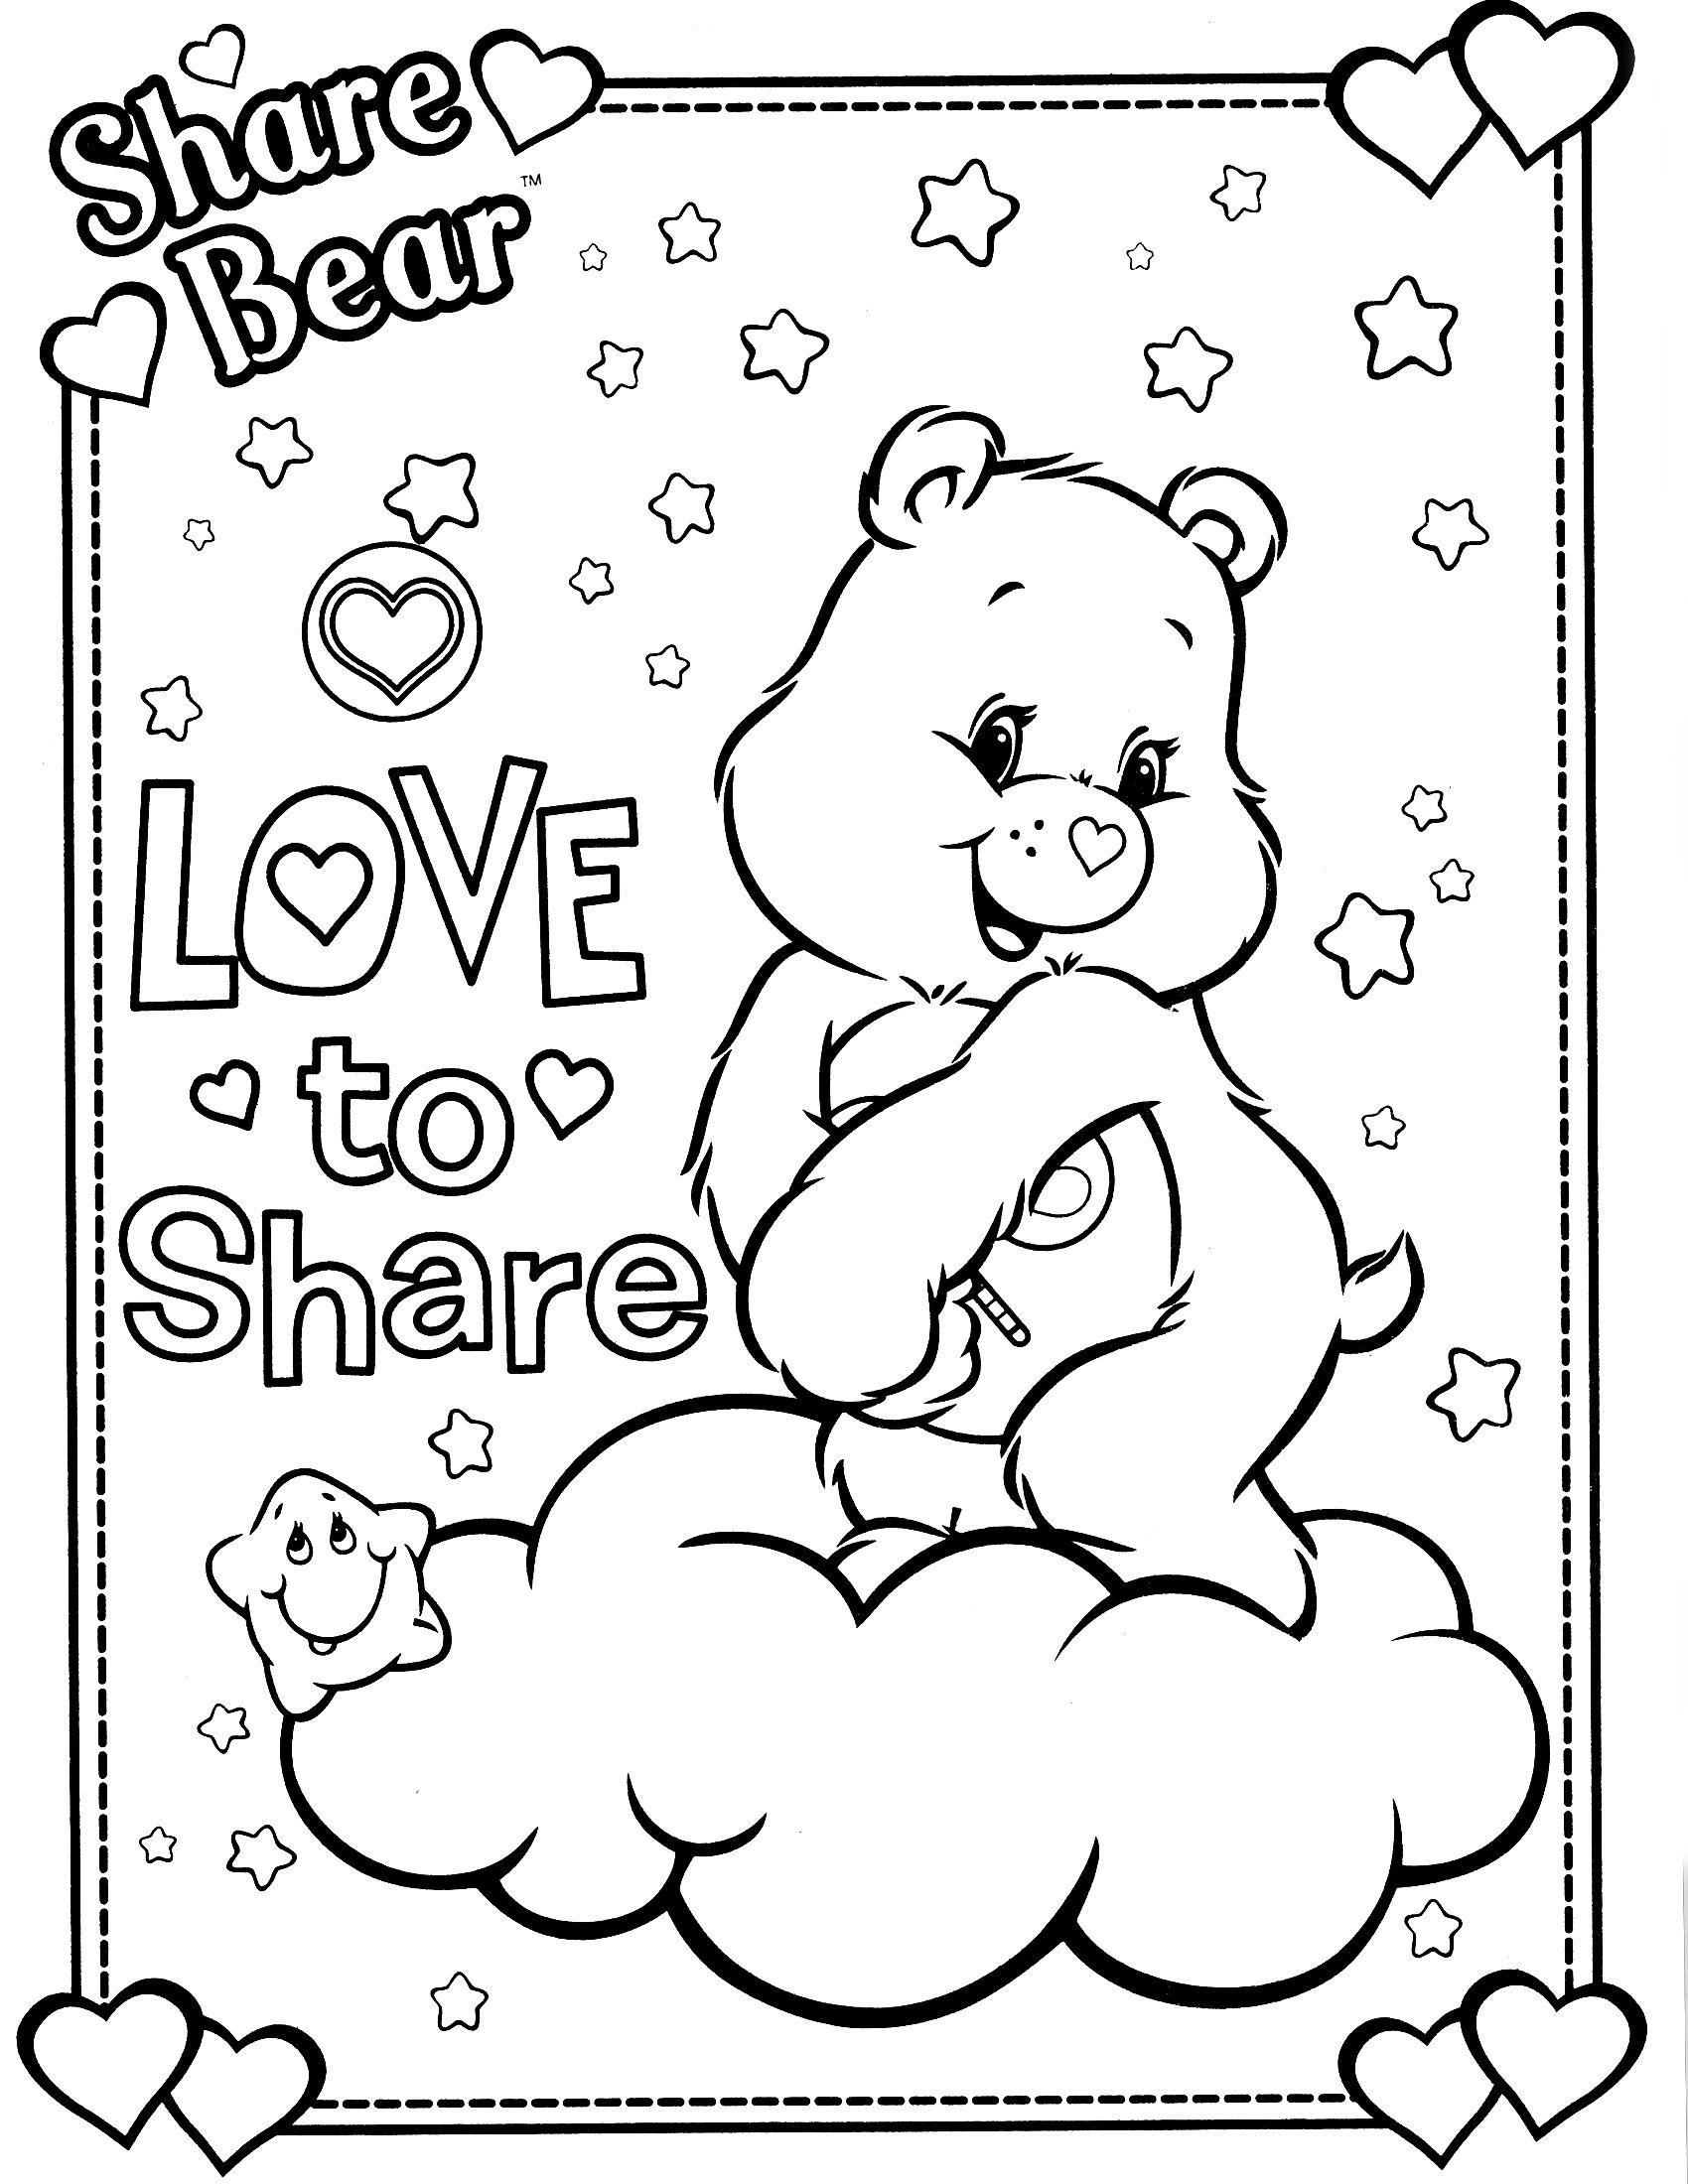 free coloring pages sharing | care bears coloring page | Bear coloring pages, Coloring ...